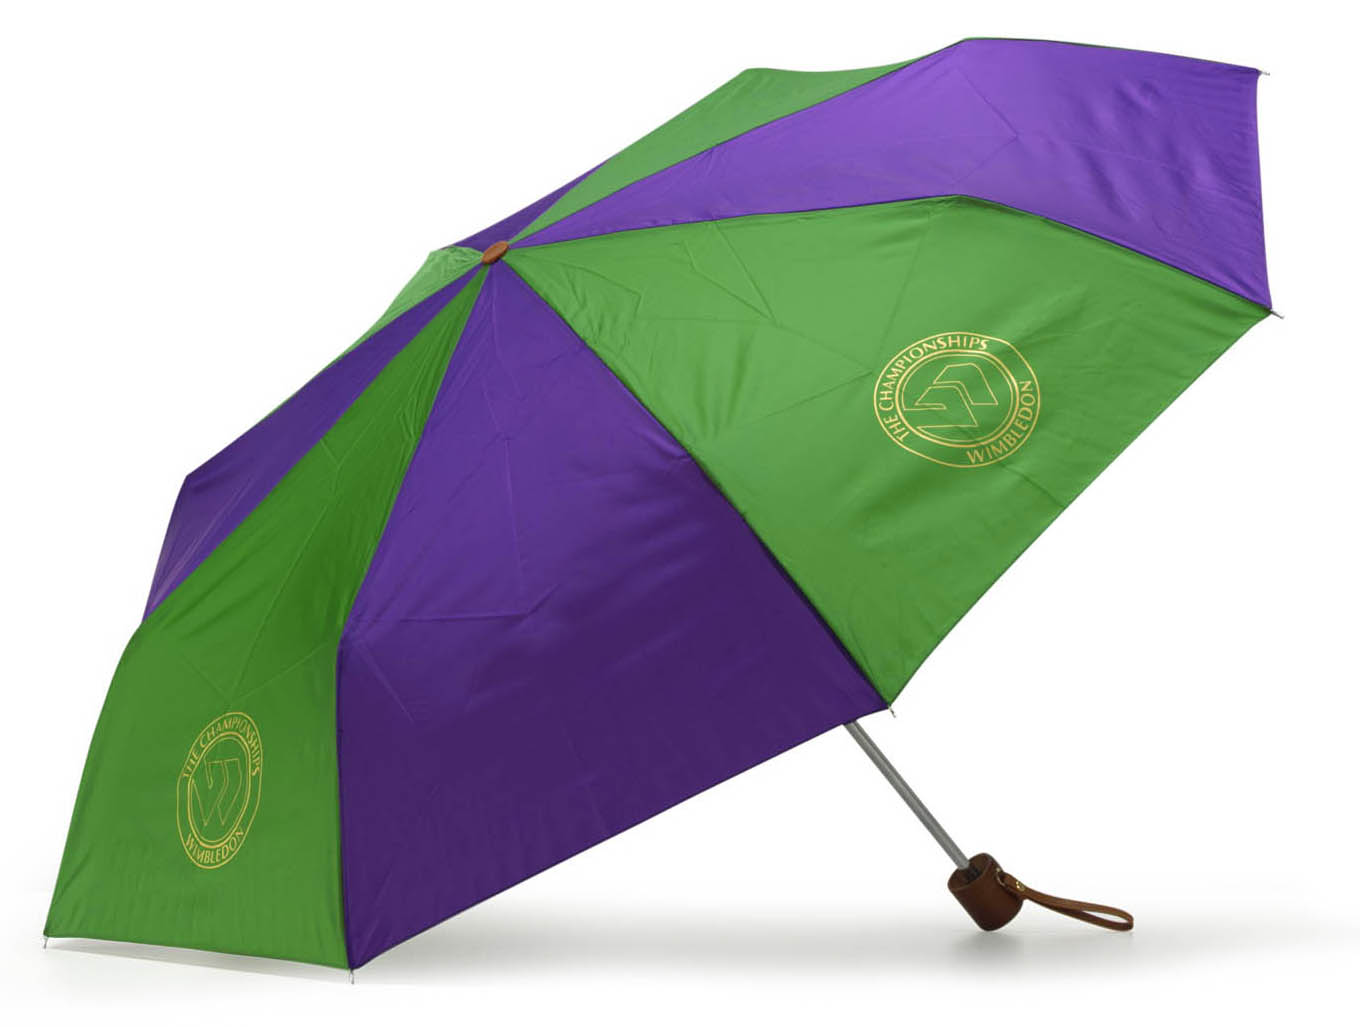 Wimbledon Super Mini Telescopic Umbrella - Purple/Green